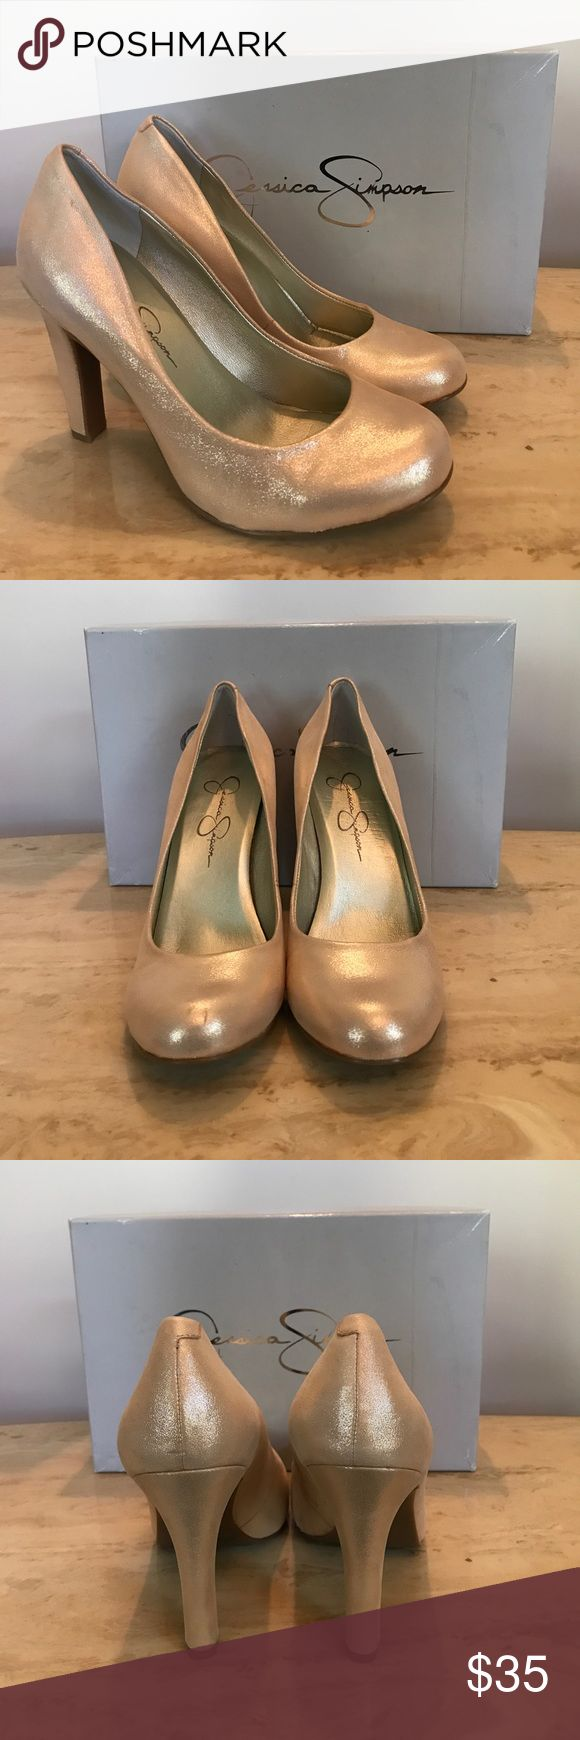 Jessica Simpson Jessica Metallic Pumps Light pink metallic round toe Pump by Jessica Simpson never been worn. Original box included. Price reflects imperfections shown in last two photos (small scuff on toe of right shoe visible when close up on toe and small stain on side of left shoe looks like it may have come from the manufacturing of shoe). Make an offer or bundle for additional savings. Jessica Simpson Shoes Heels